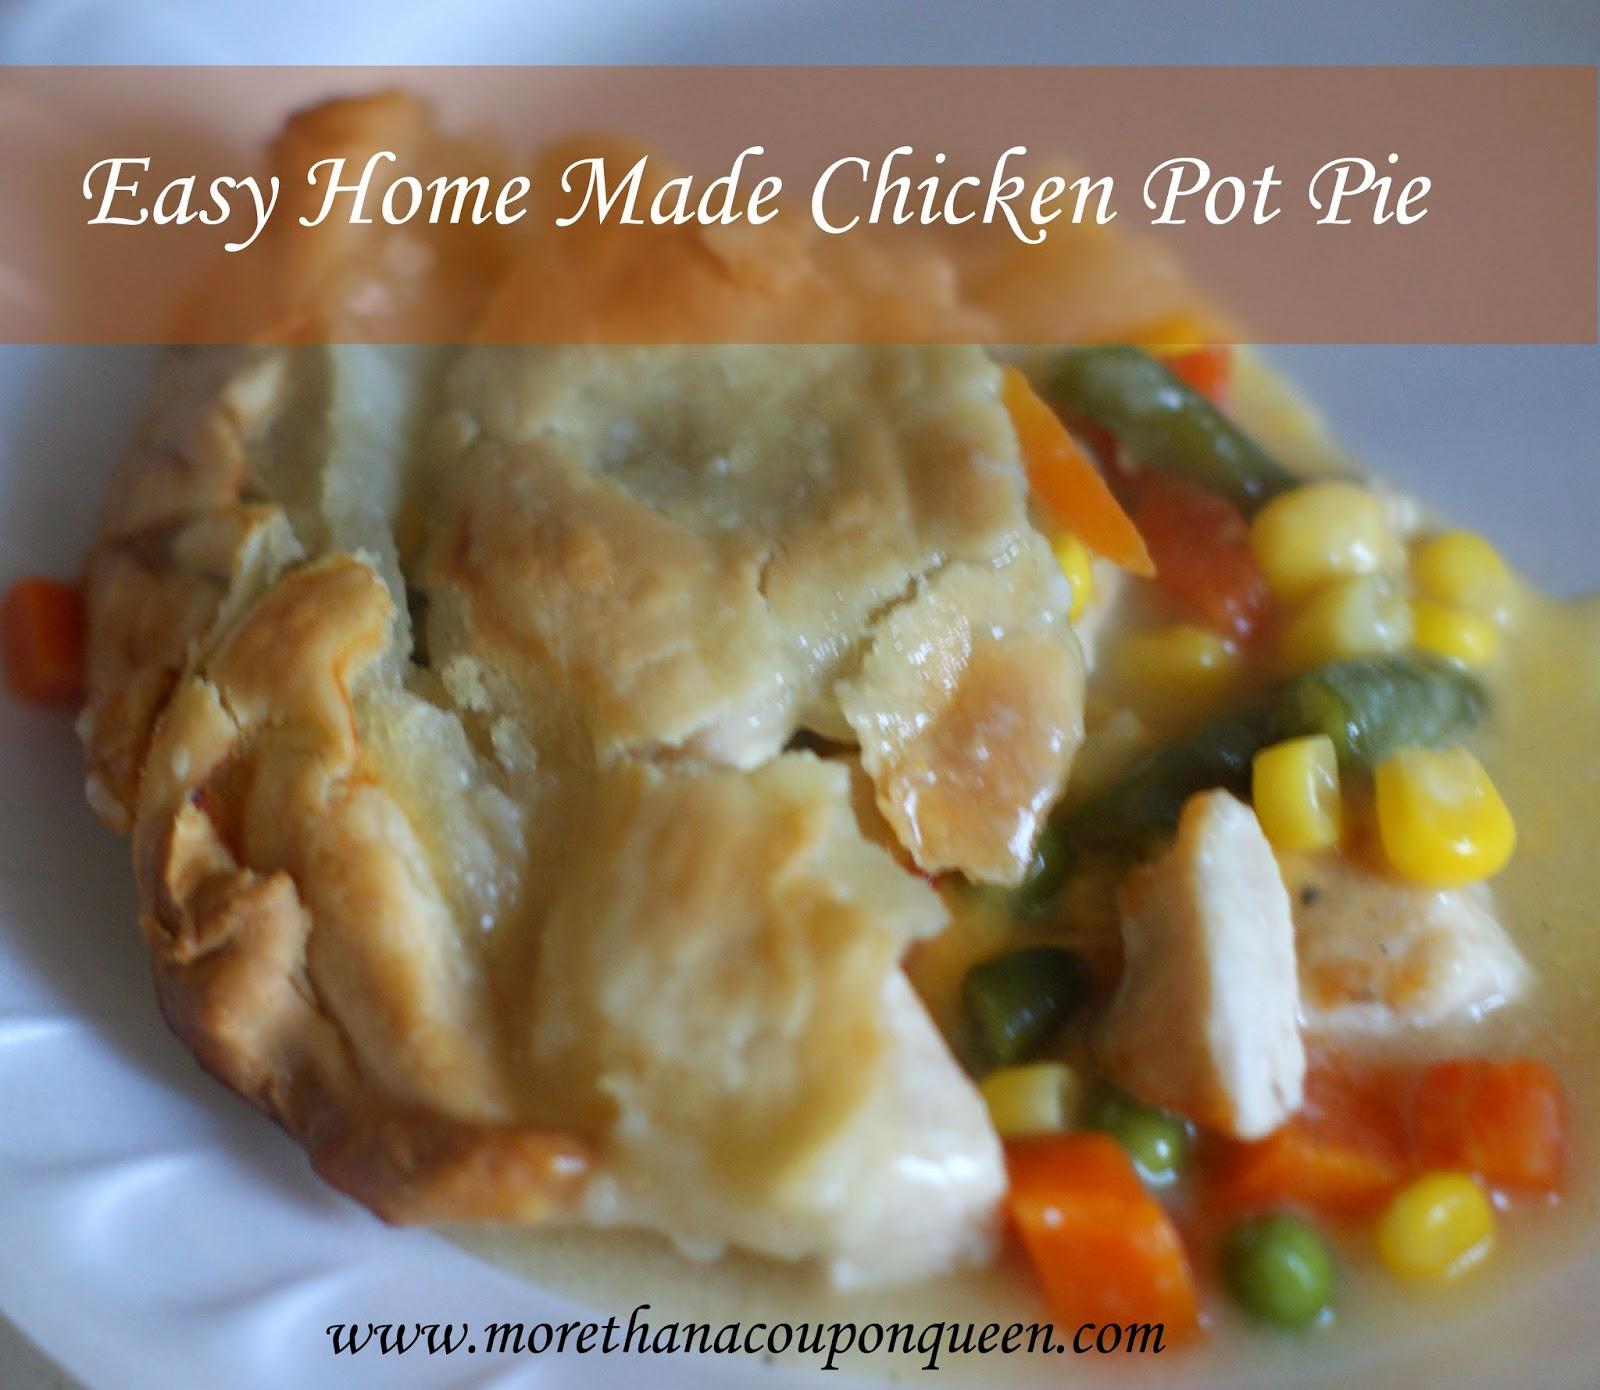 Easy Home Made Chicken Pot Pie - Good food shouldn't have to break the bank